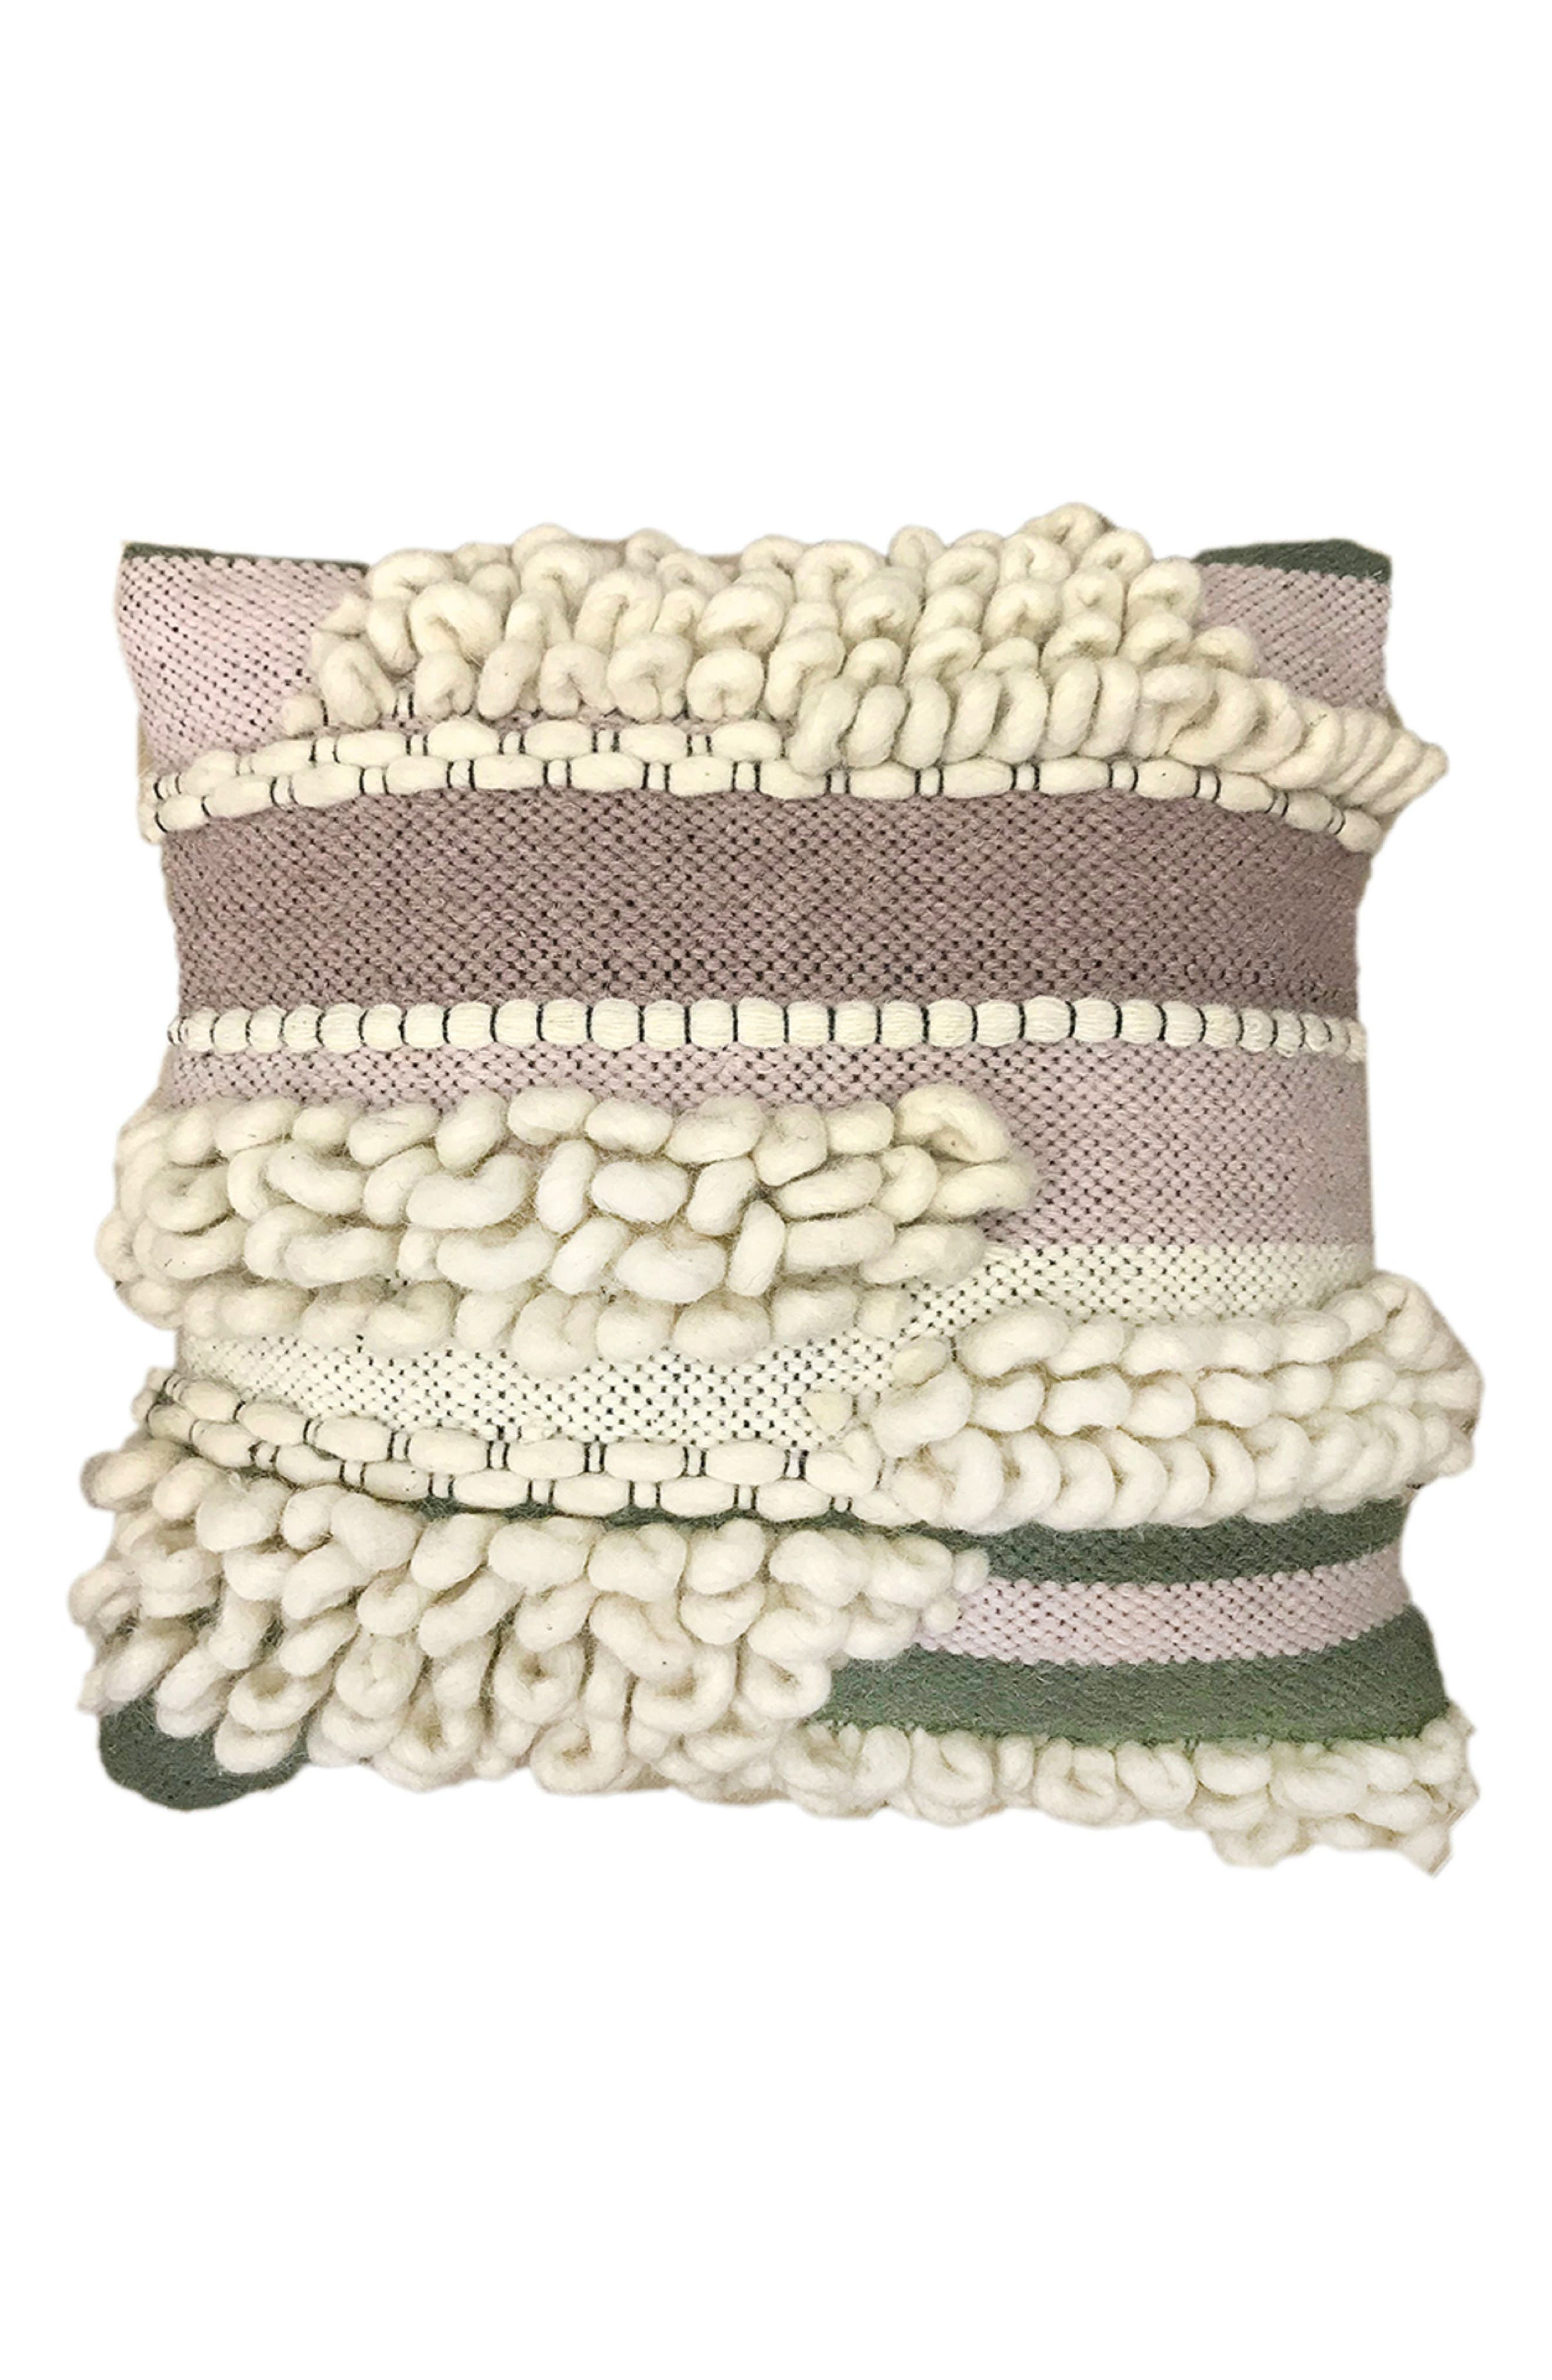 Safi Wool Accent Pillow,                         Main,                         color, IVORY/ BERRY/ MOSS